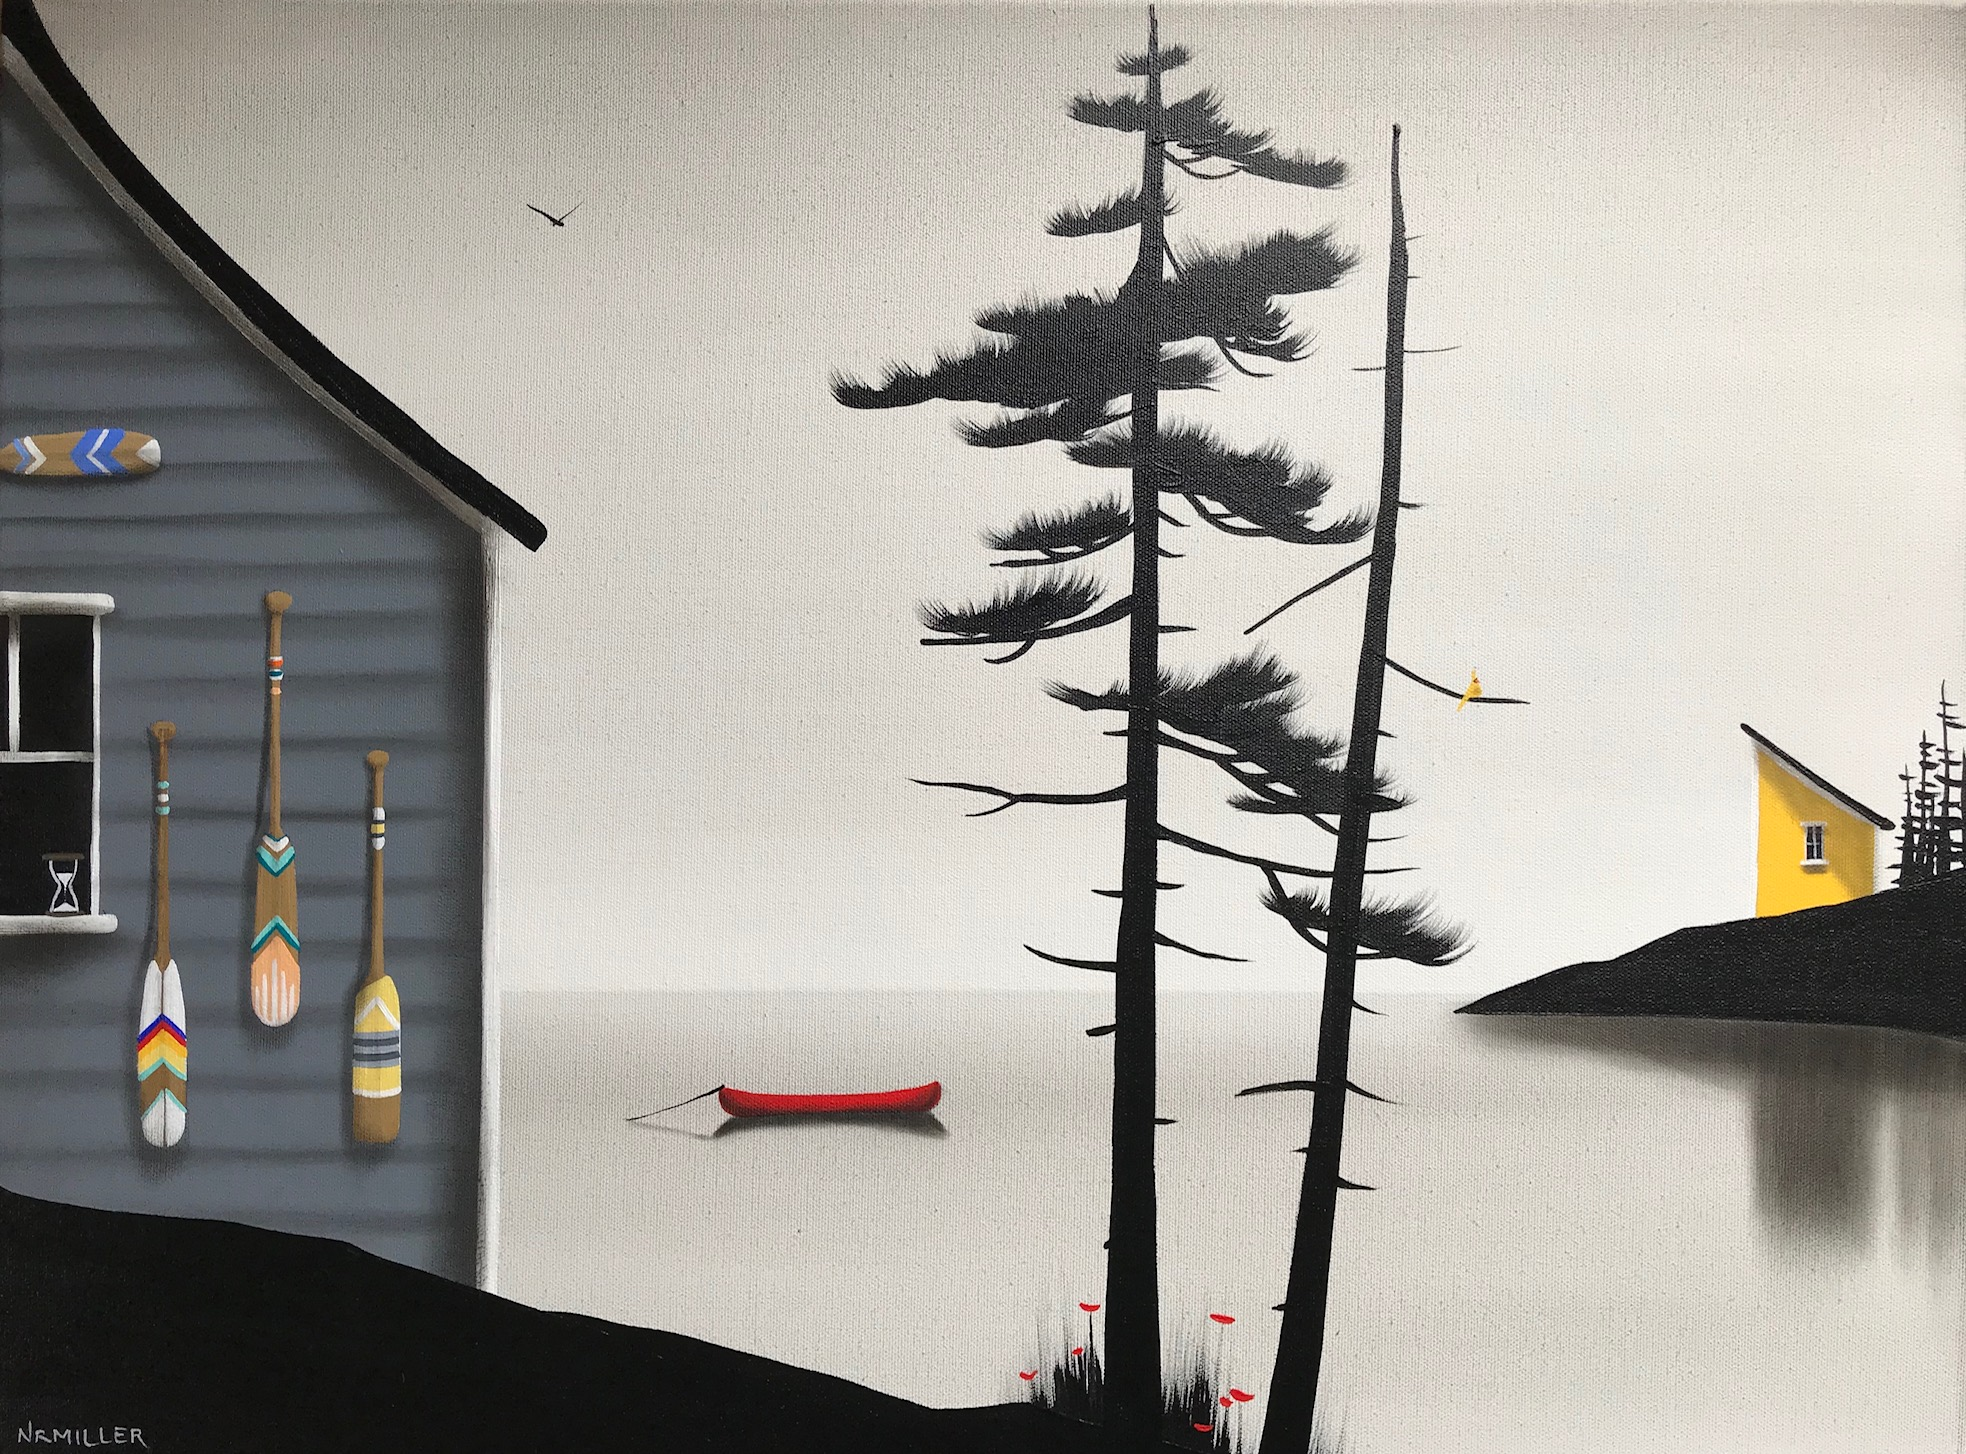 Precious Time, mixed media coastal landscape painting by Natasha Miller | Effusion Art Gallery + Cast Glass Studio, Invermere BC